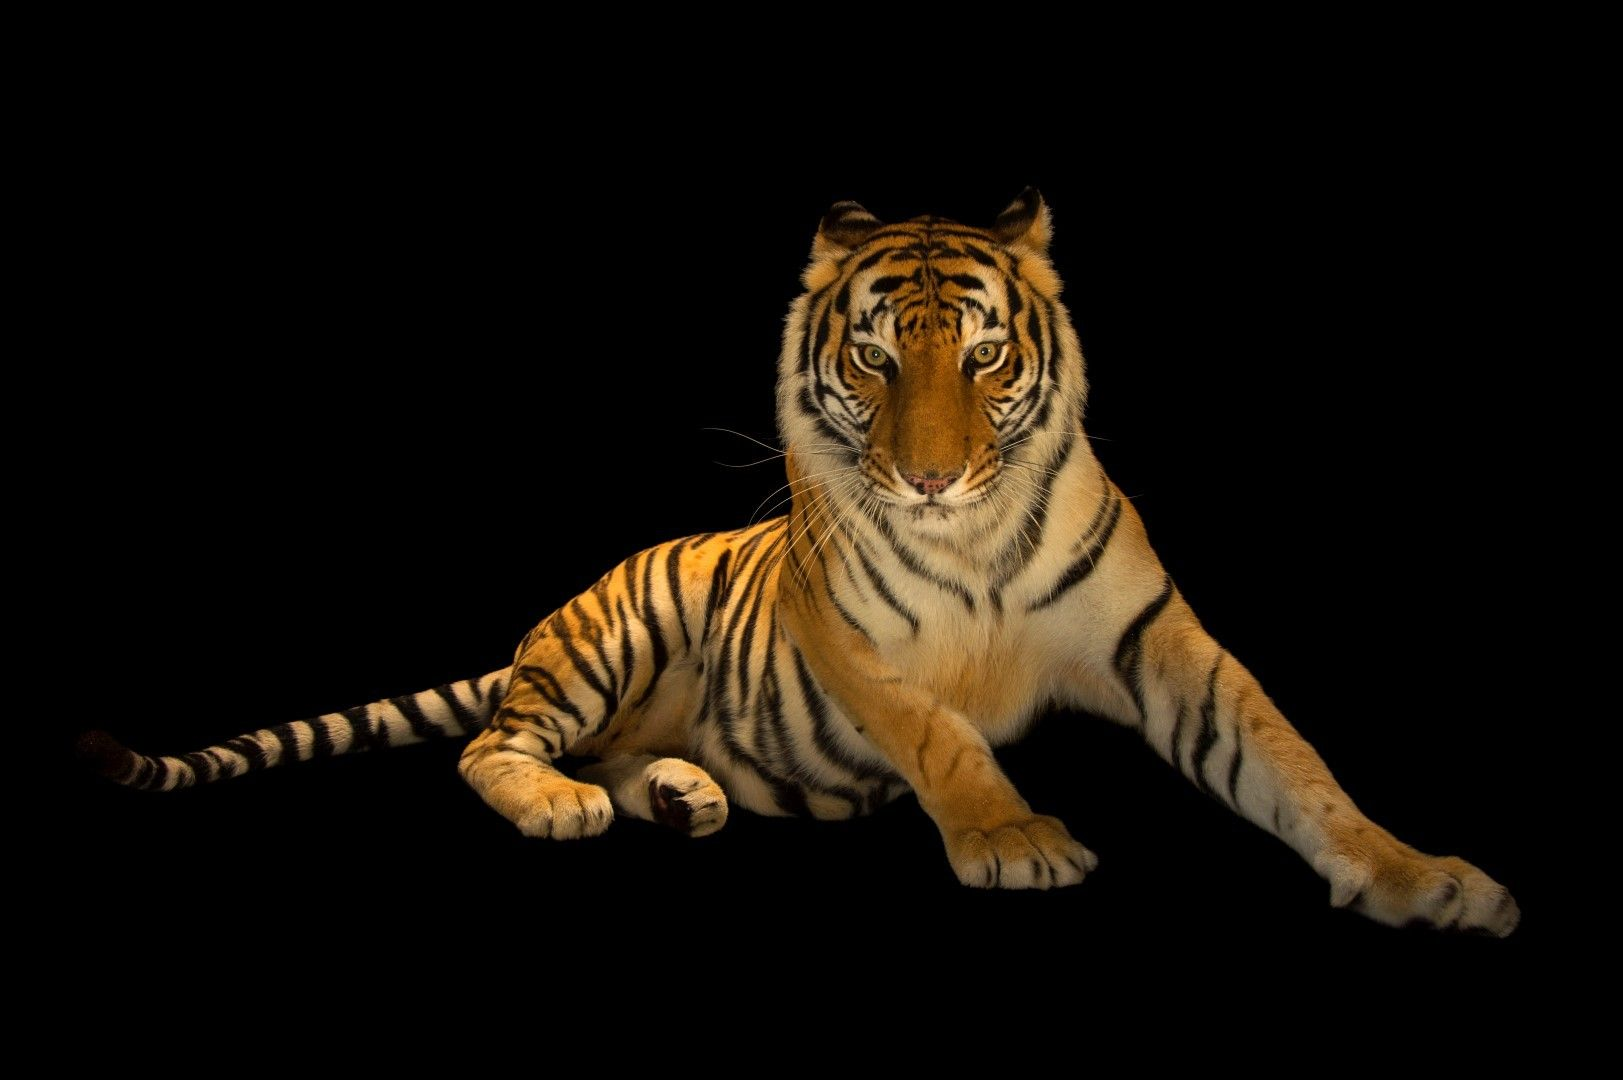 Tigre de Bengala | National Geographic